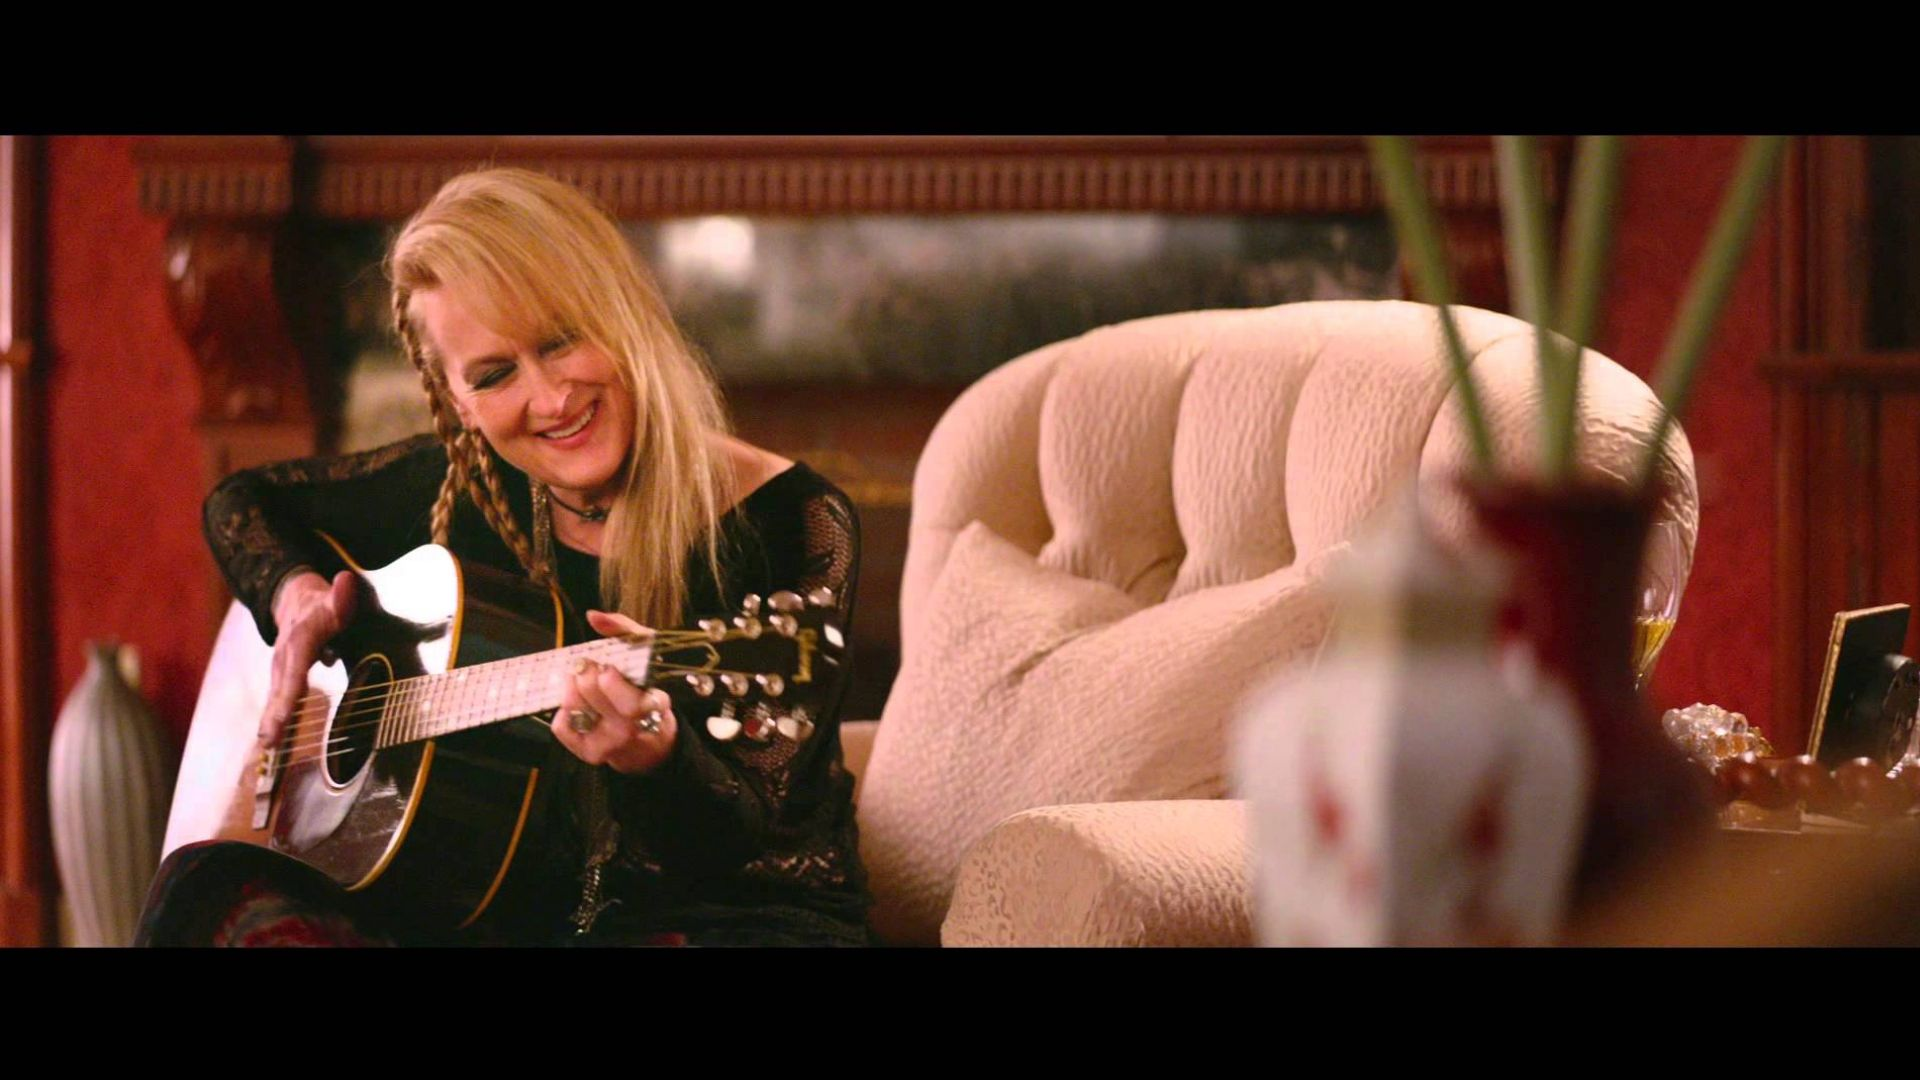 Meryl Streep Rocks Out in New 'Ricki and the Flash' Trailer